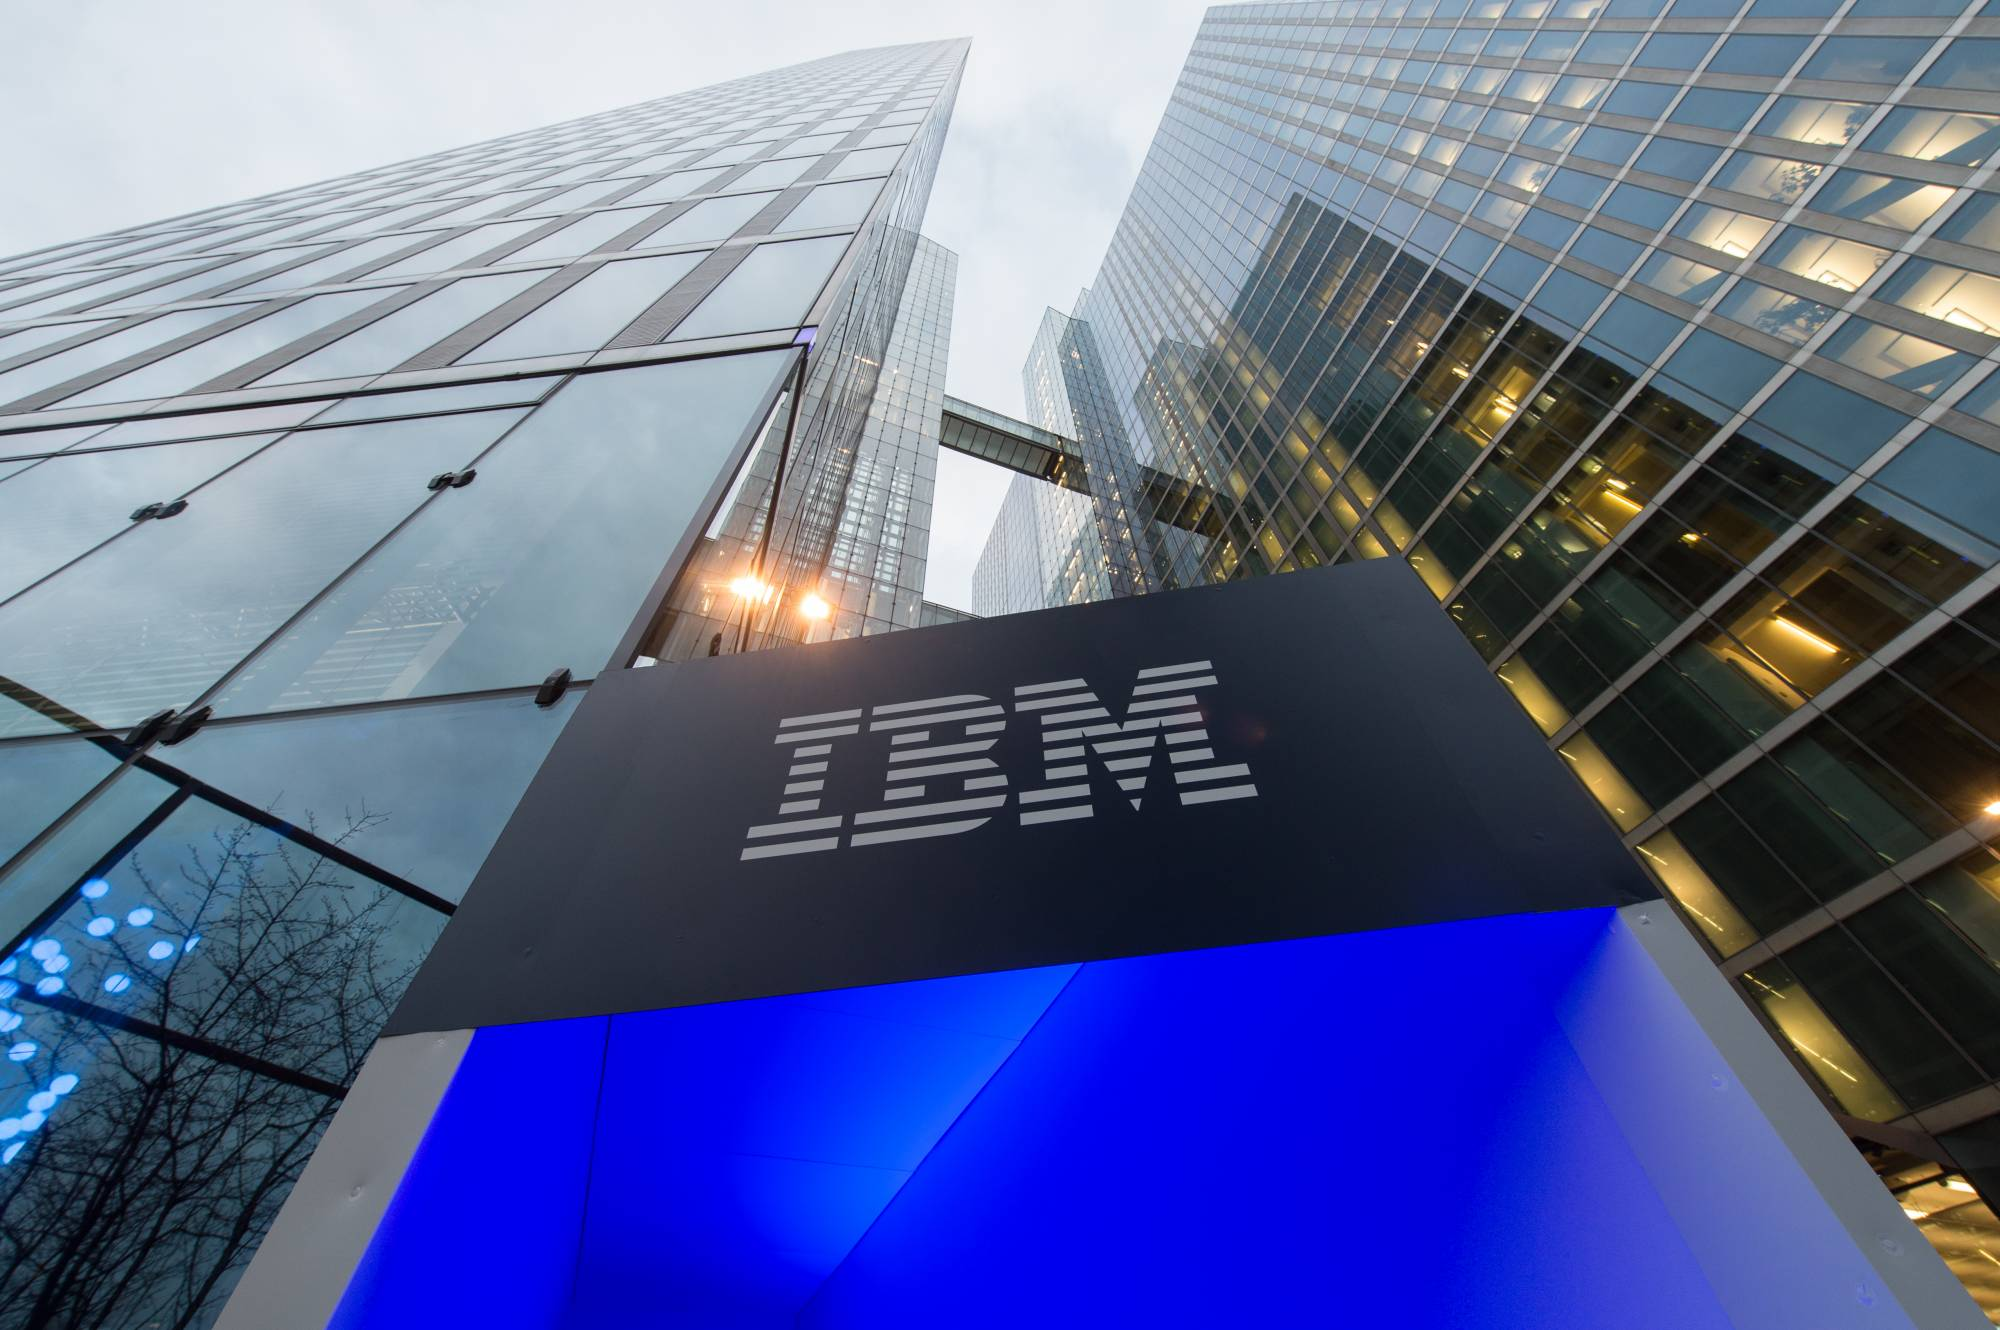 IBM wants Watson's digital brains to move across Amazon, Microsoft, and Google clouds.